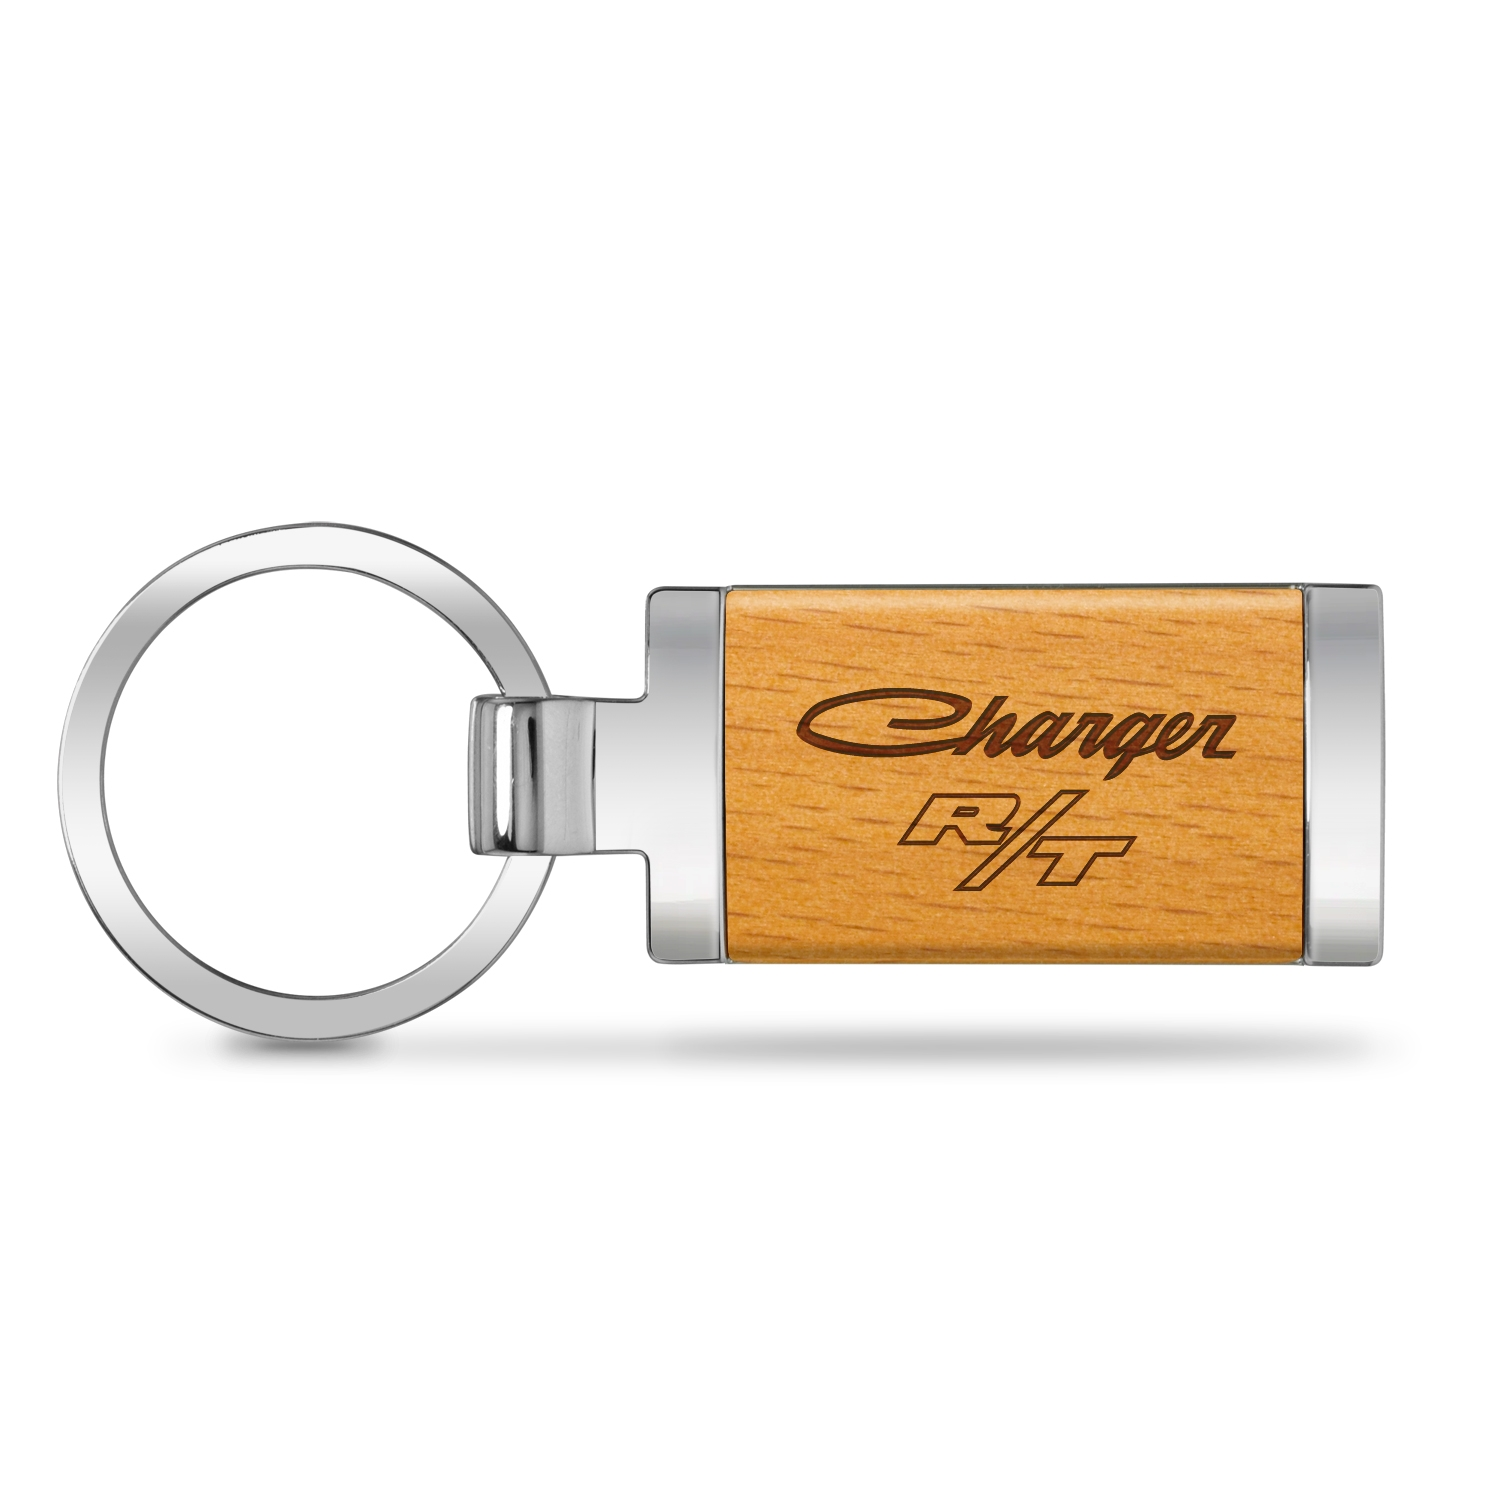 Dodge Charger R/T Classic Laser Engraved Maple Wood Chrome Metal Trim Key Chain